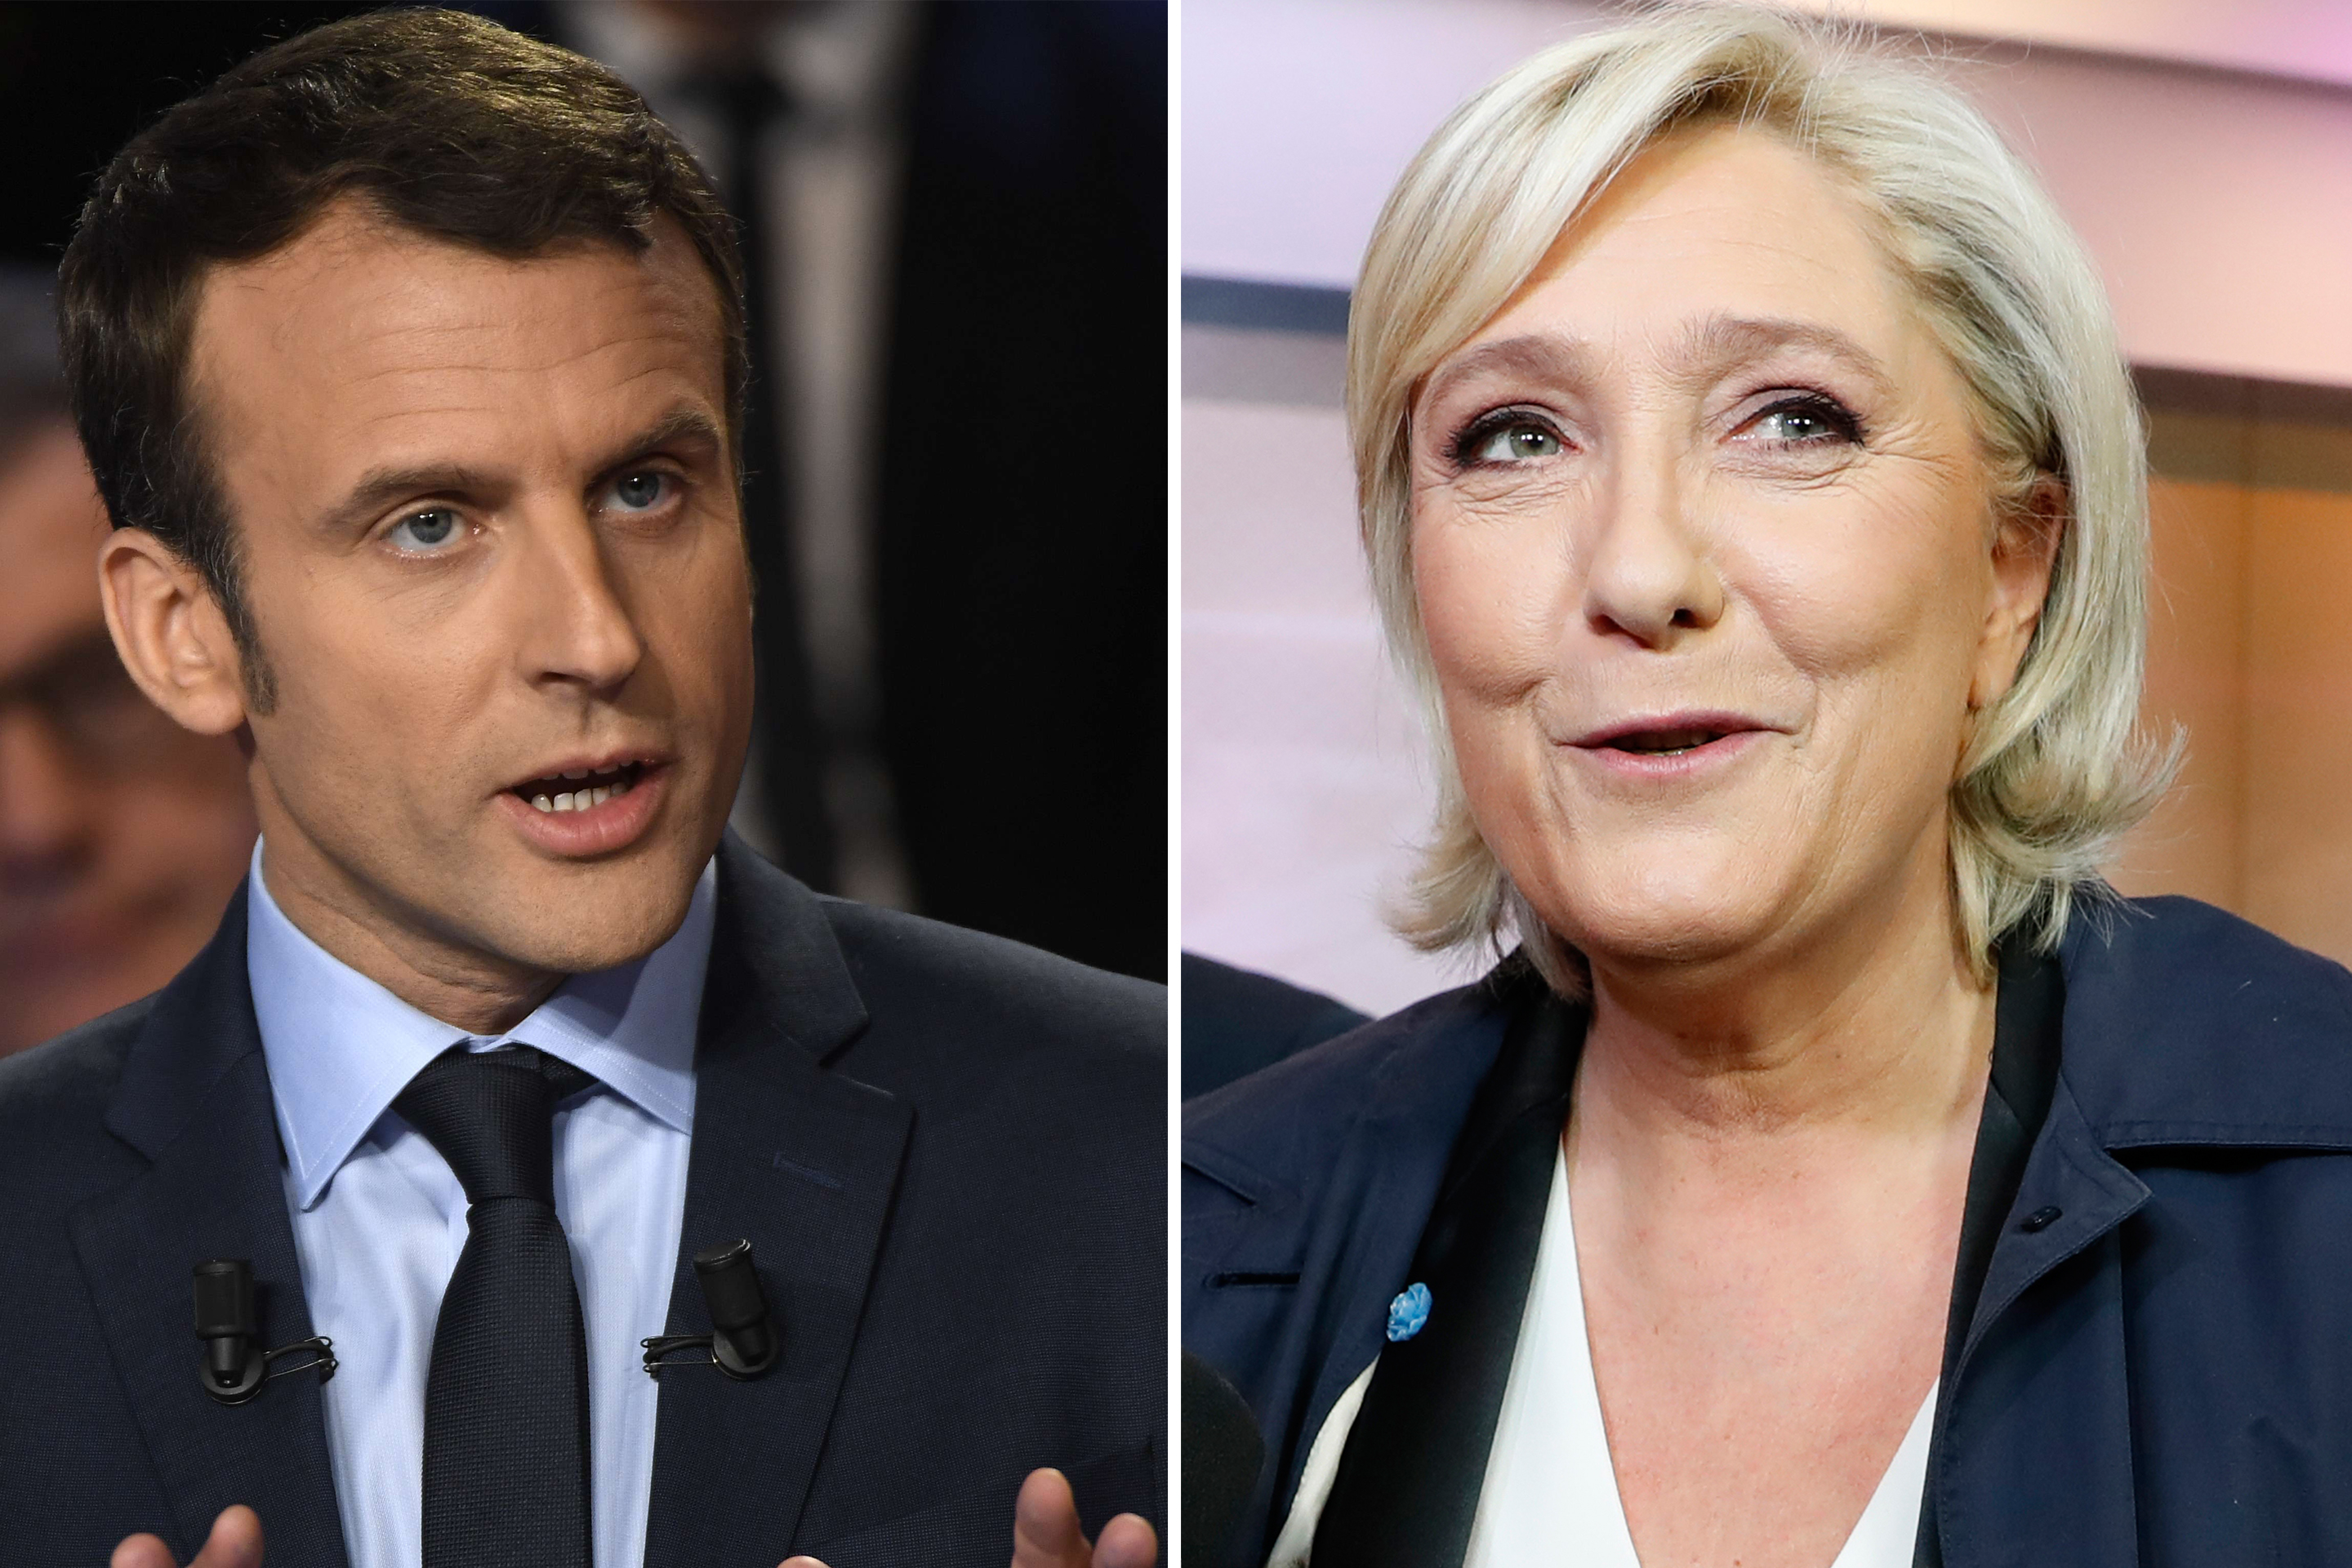 French presidential candidates Emmanuel Macron and Marine Le Pen.